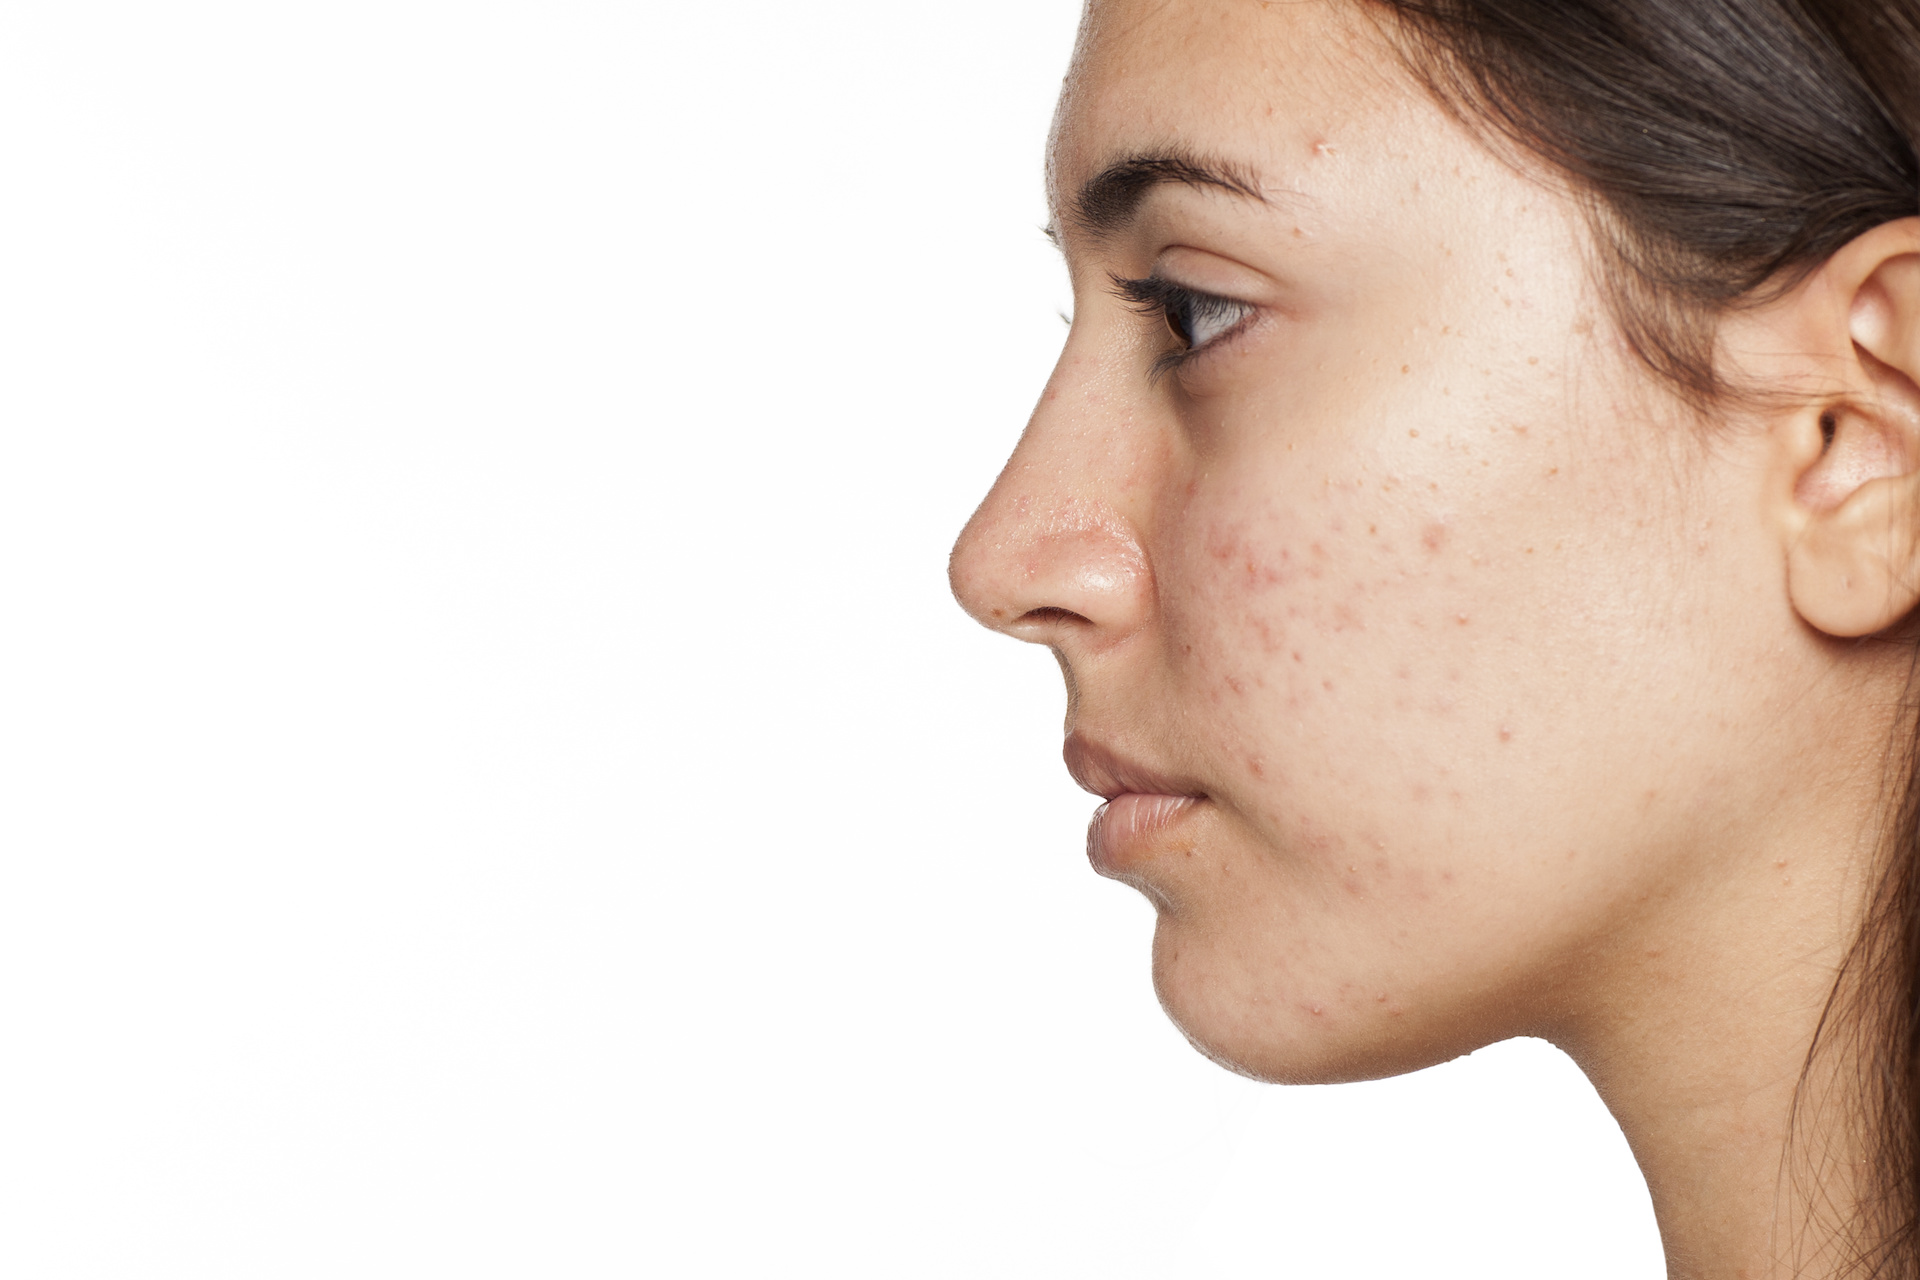 Treating PIH Caused By Acne